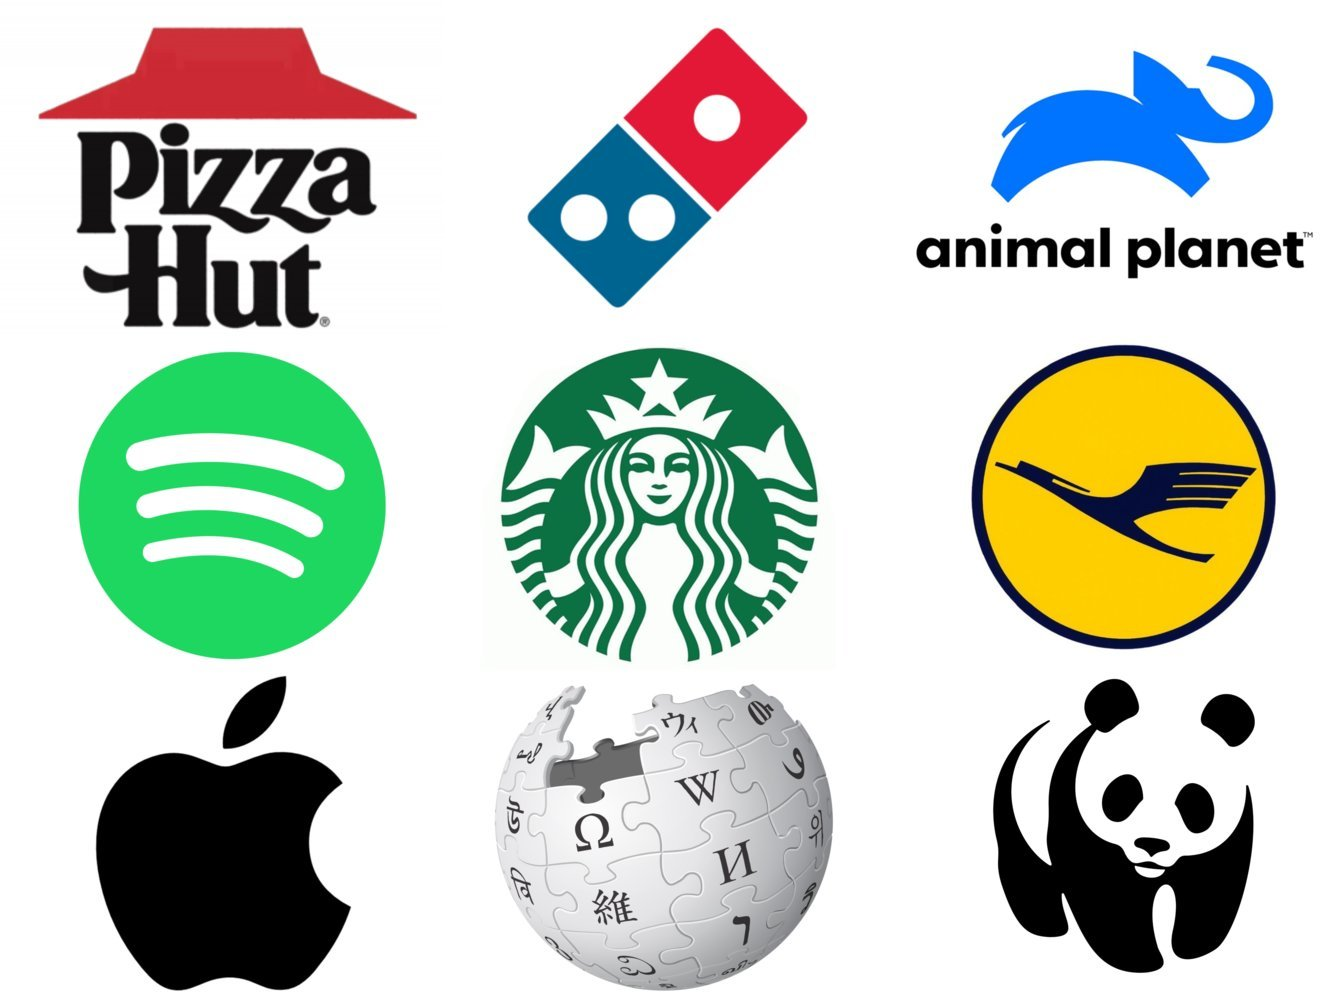 The hot trend in ultra-minimalist logos — think Mastercard or Dunkin' — goes exactly against what makes people want to buy stuff